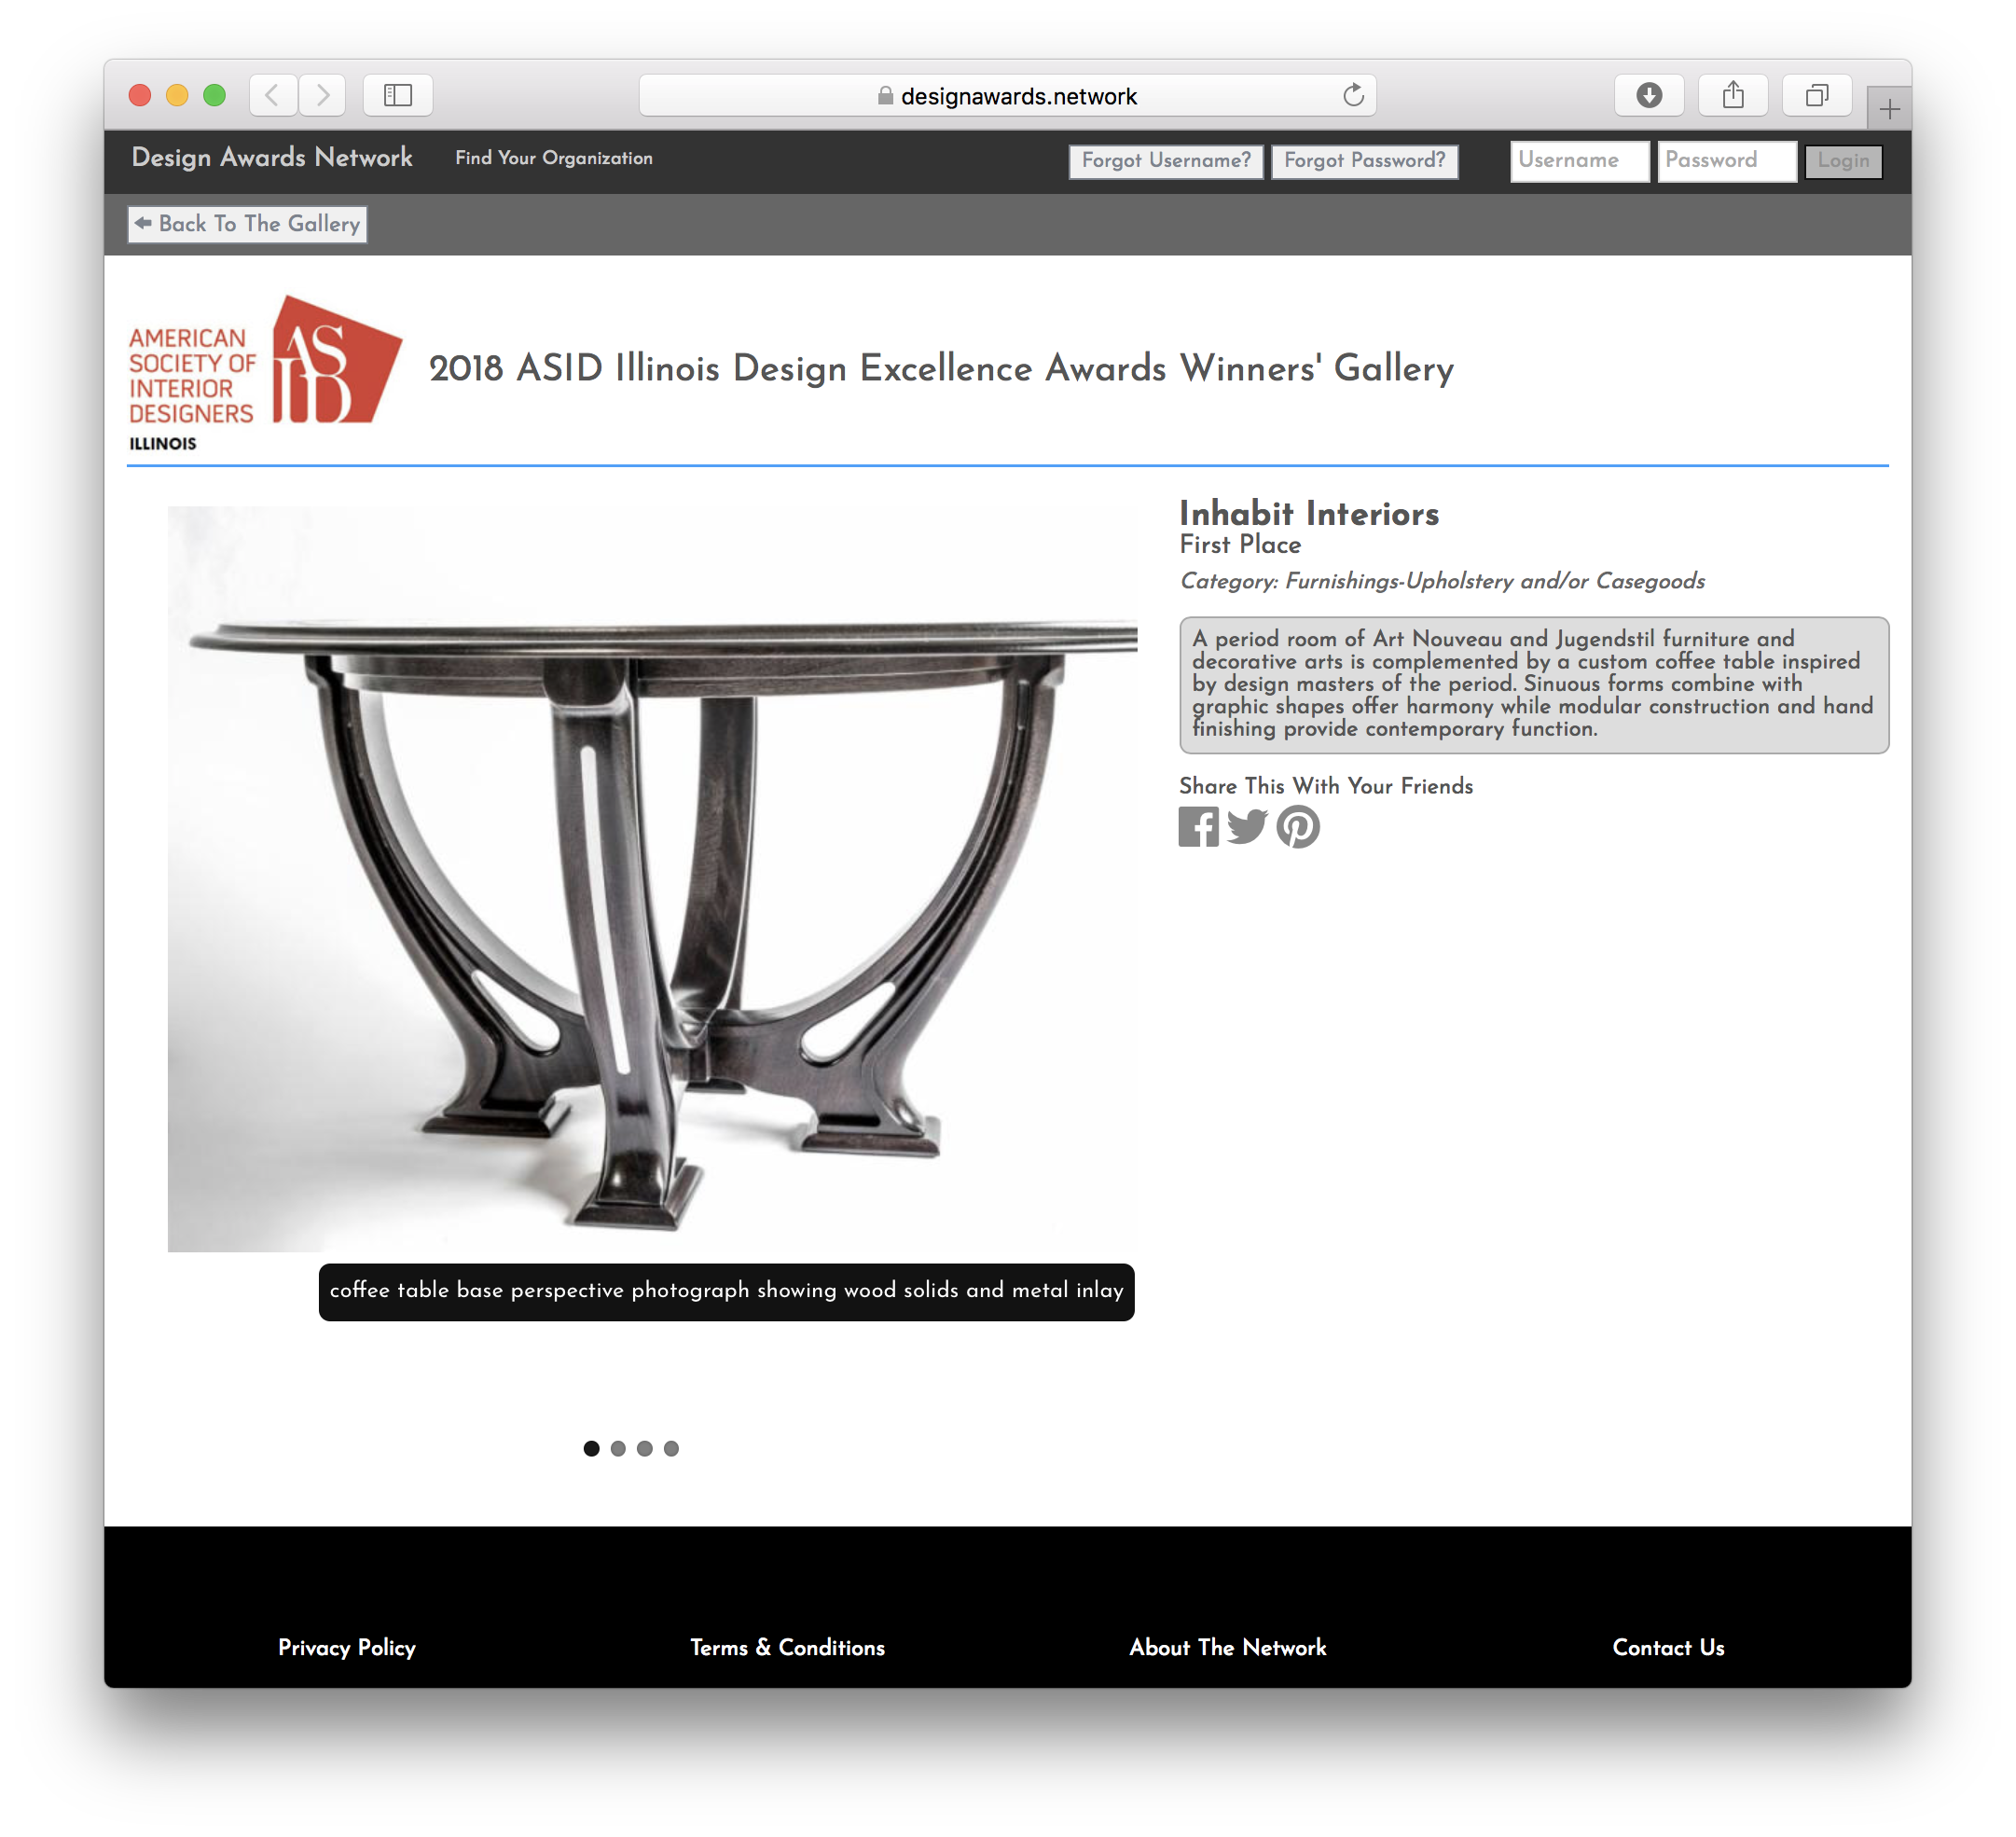 American Society of Interior Designers— Inhabit Interiors First Place Furniture Design Award